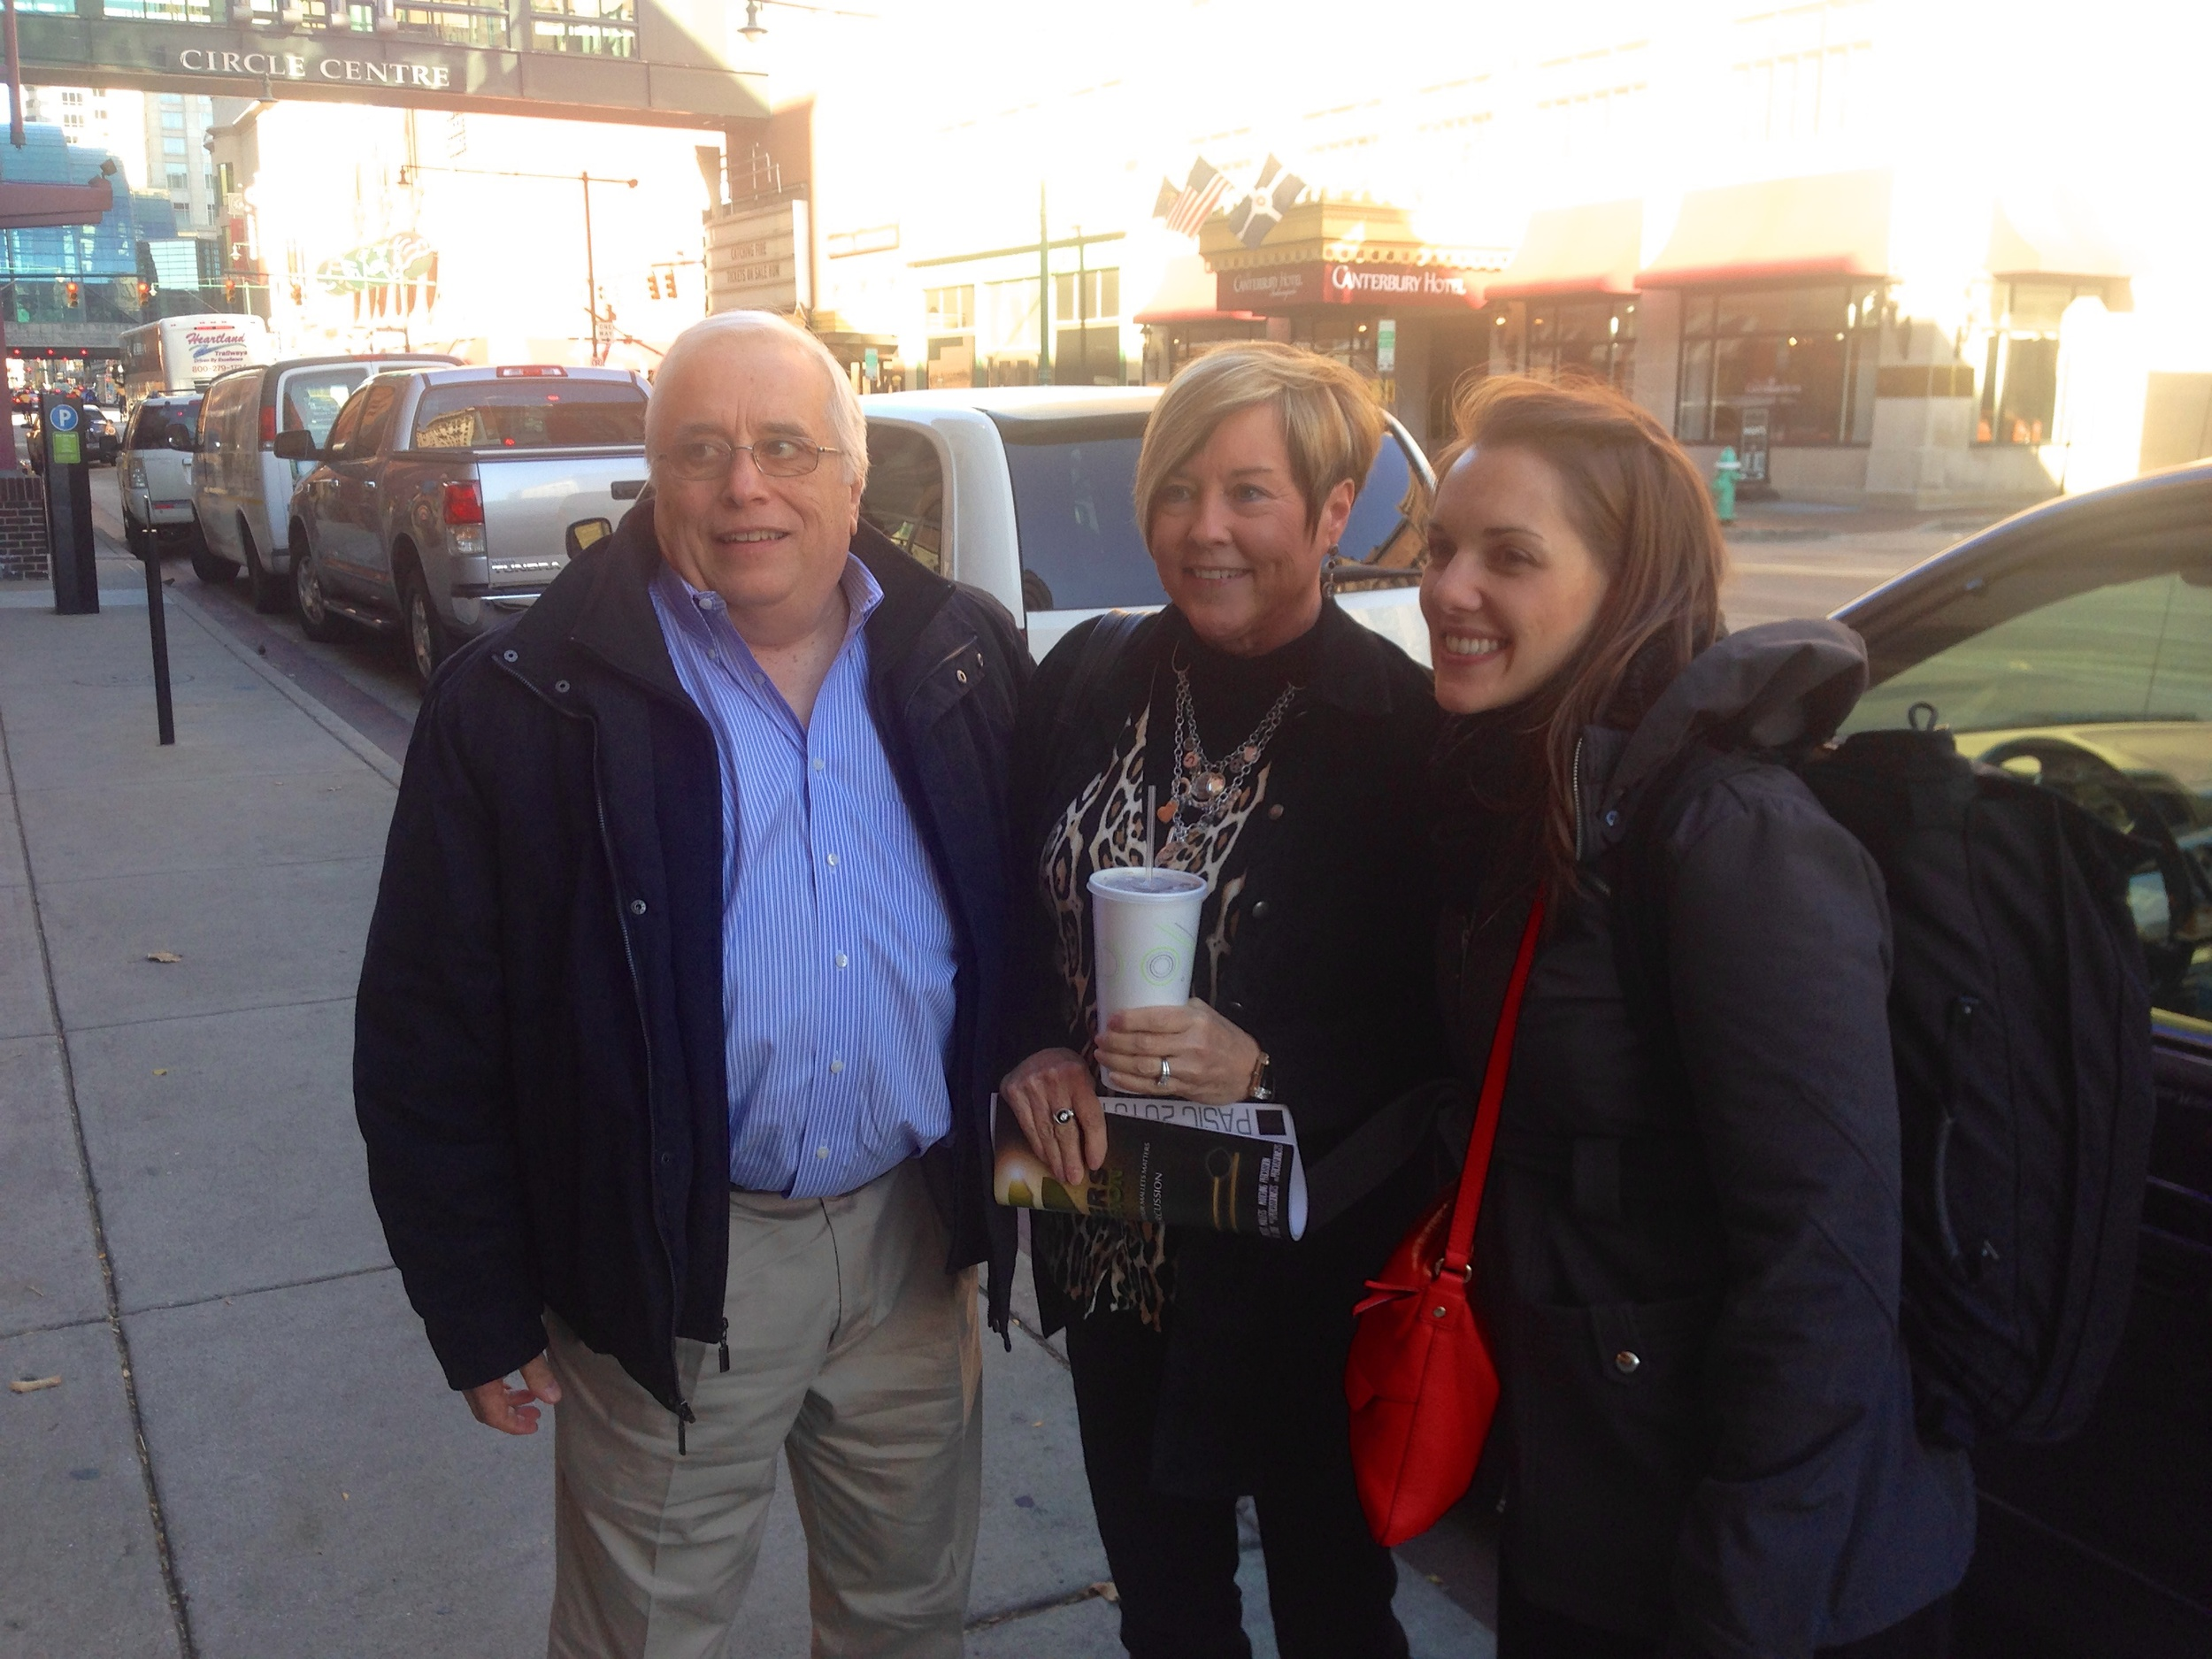 2013-11-14 14-48-21 Maria and parents.jpg